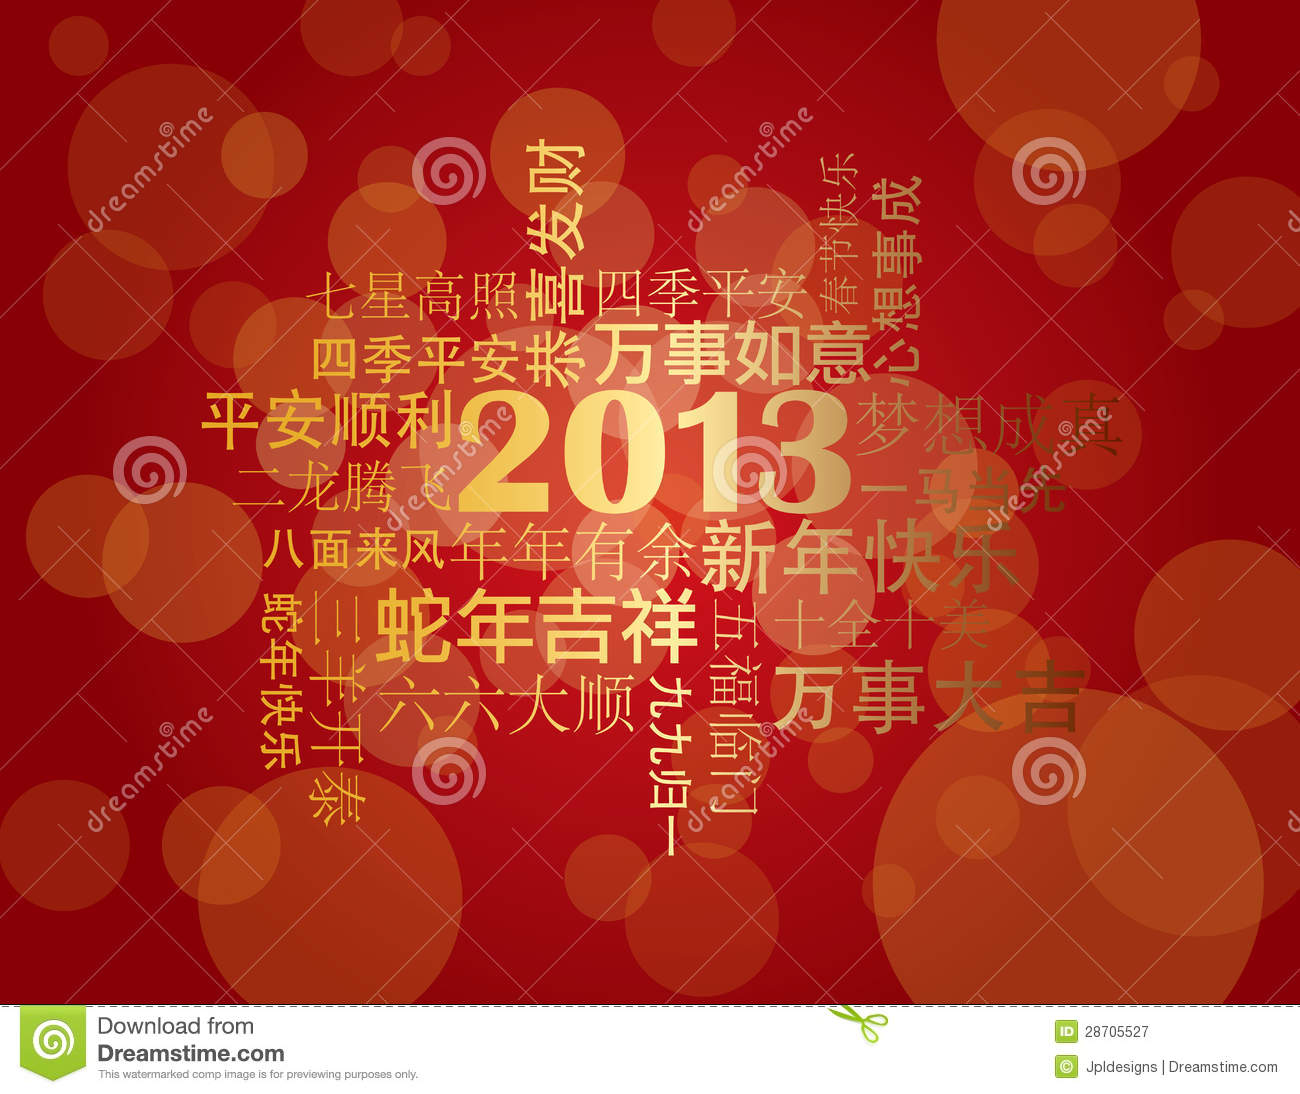 2013 chinese new year greetings background stock vector download 2013 chinese new year greetings background stock vector illustration of sayings simplified m4hsunfo